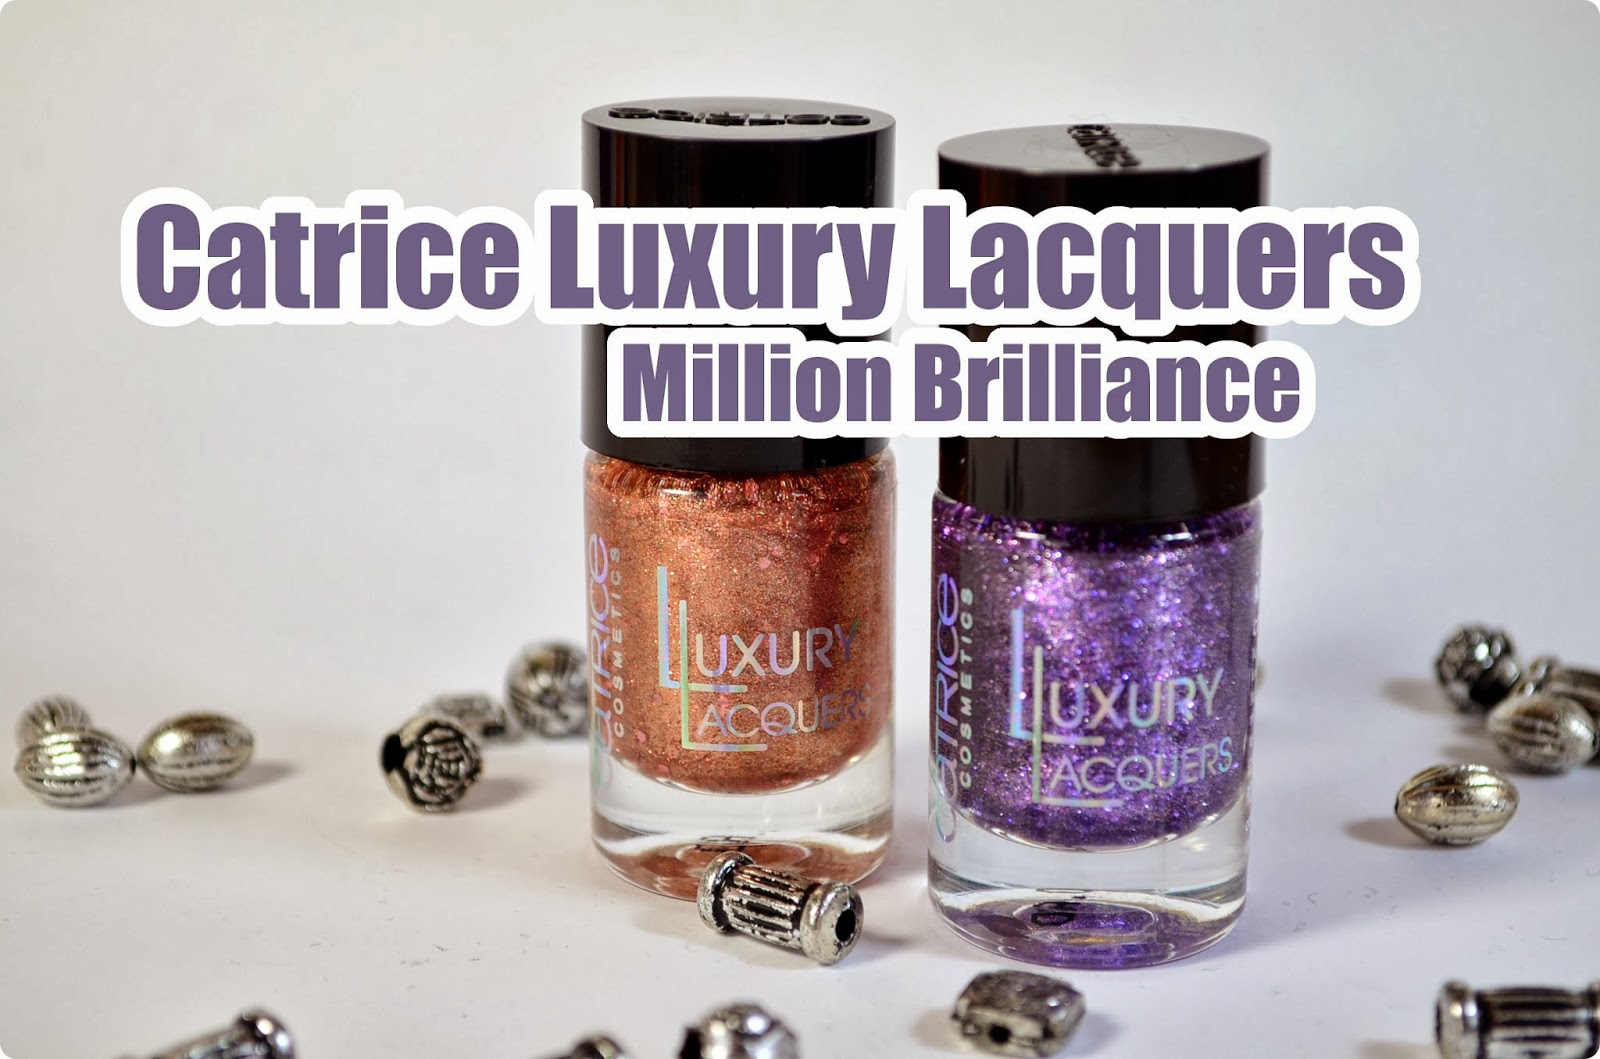 Catrice Luxury Lacquers - Million Brilliance